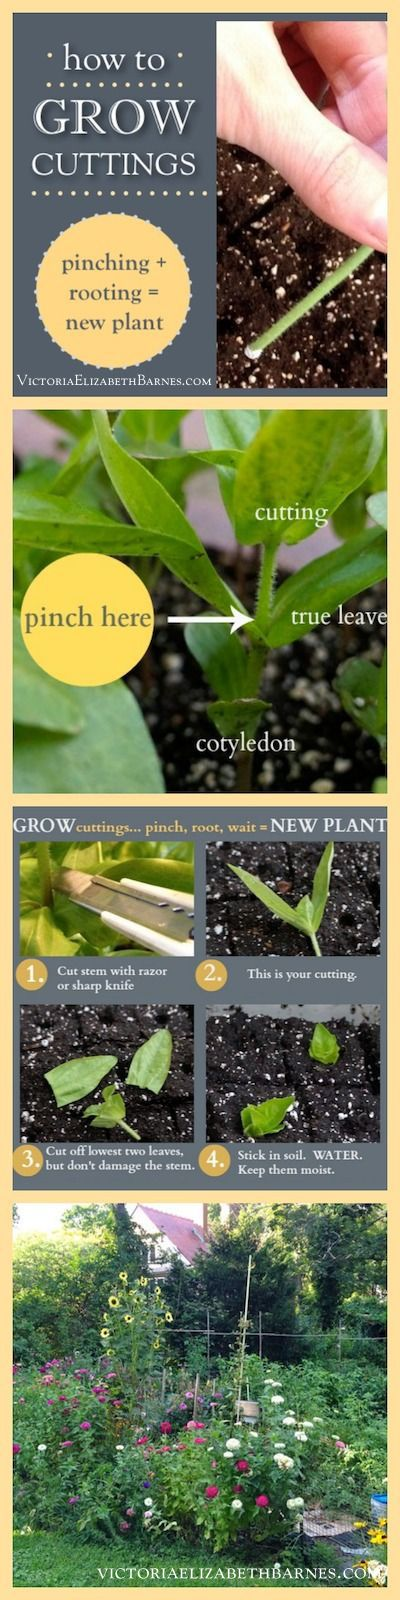 How to grow plant cuttings. Step-by-step instructions for pinching plants and rooting the cuttings... You'll have fuller plants and more flowers.